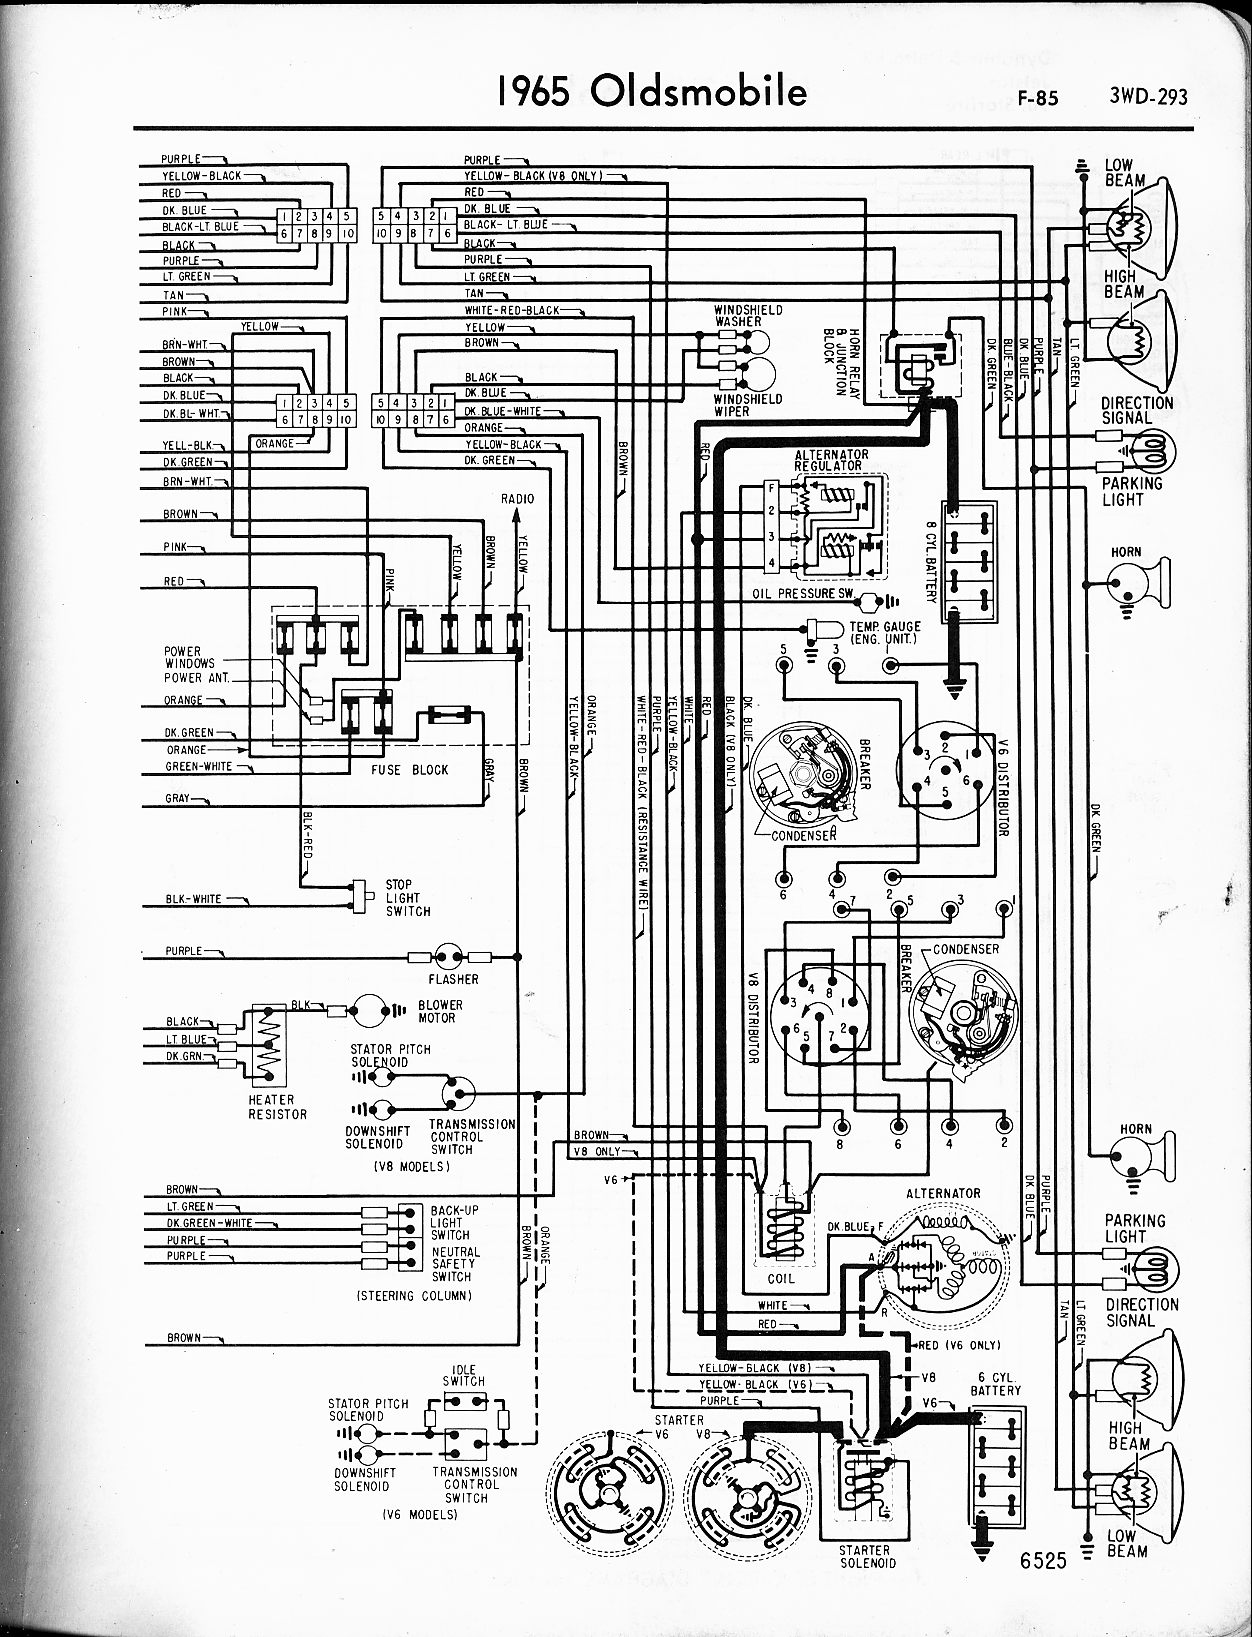 MWire5765 293 oldsmobile wiring diagrams the old car manual project regency ceiling fan wiring diagram at bakdesigns.co